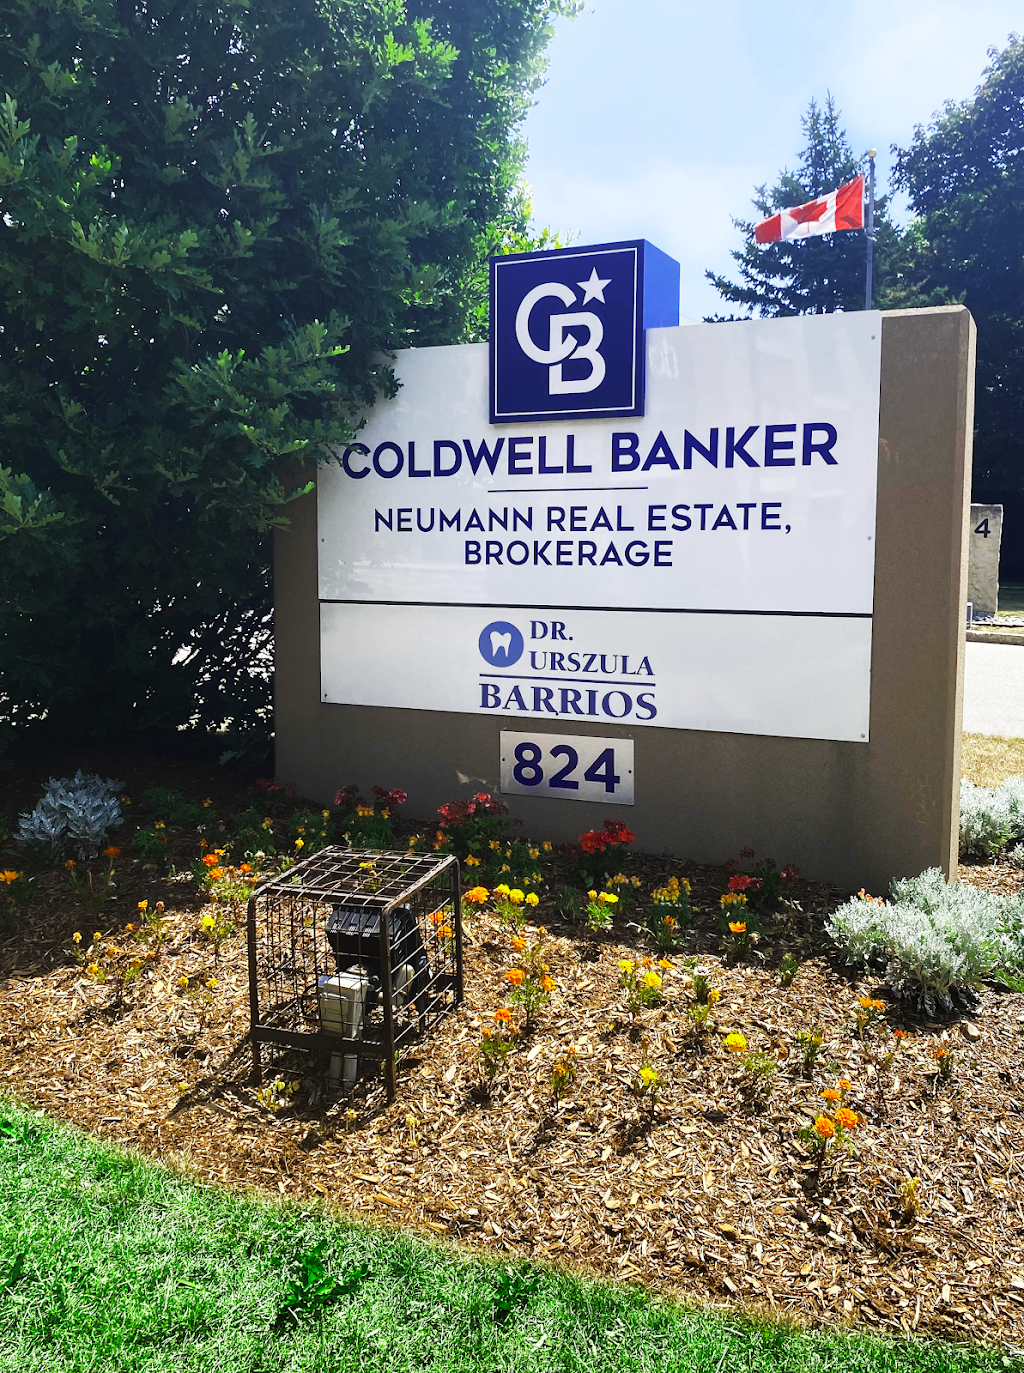 Coldwell Banker Neumann Real Estate Brokerage | real estate agency | 824 Gordon St, Guelph, ON N1G 1Y7, Canada | 5198213600 OR +1 519-821-3600